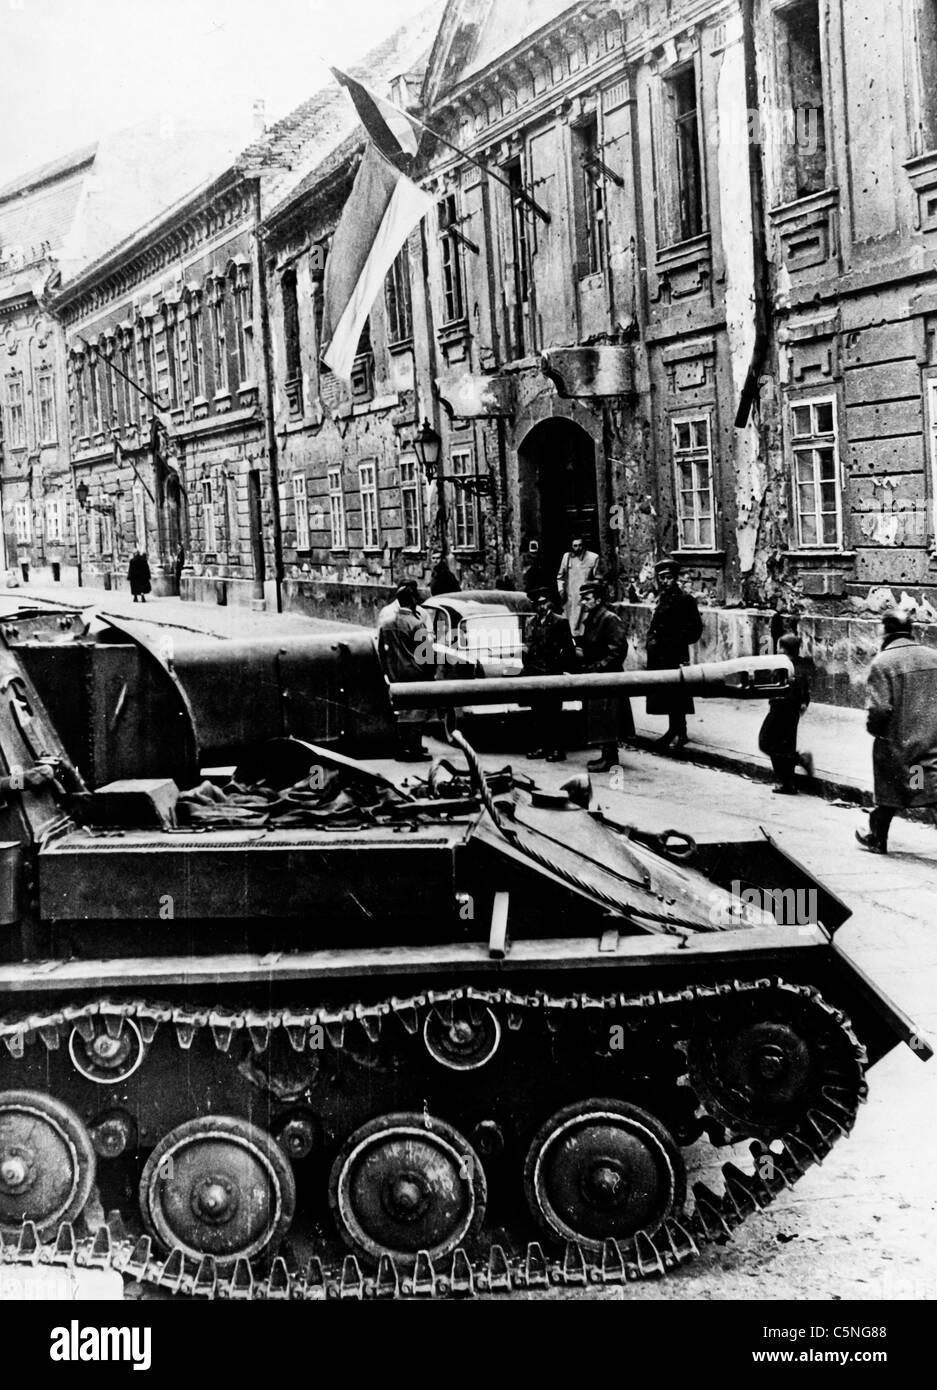 Russian tanks in Budapest, Hungary, 1956 - Stock Image